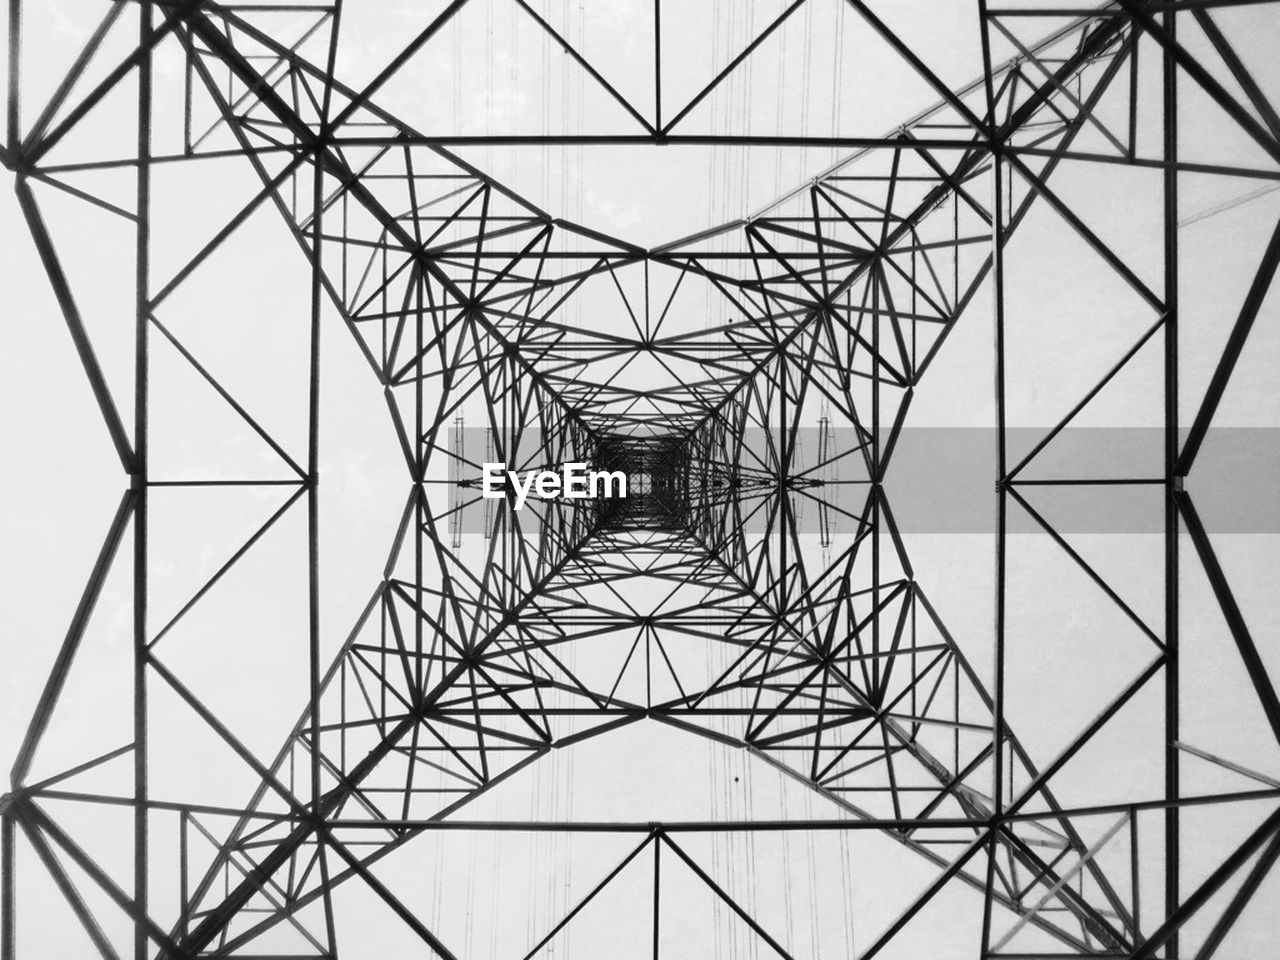 pattern, symmetry, abstract, electricity pylon, grid, connection, electricity, girder, cable, no people, full frame, steel, sky, day